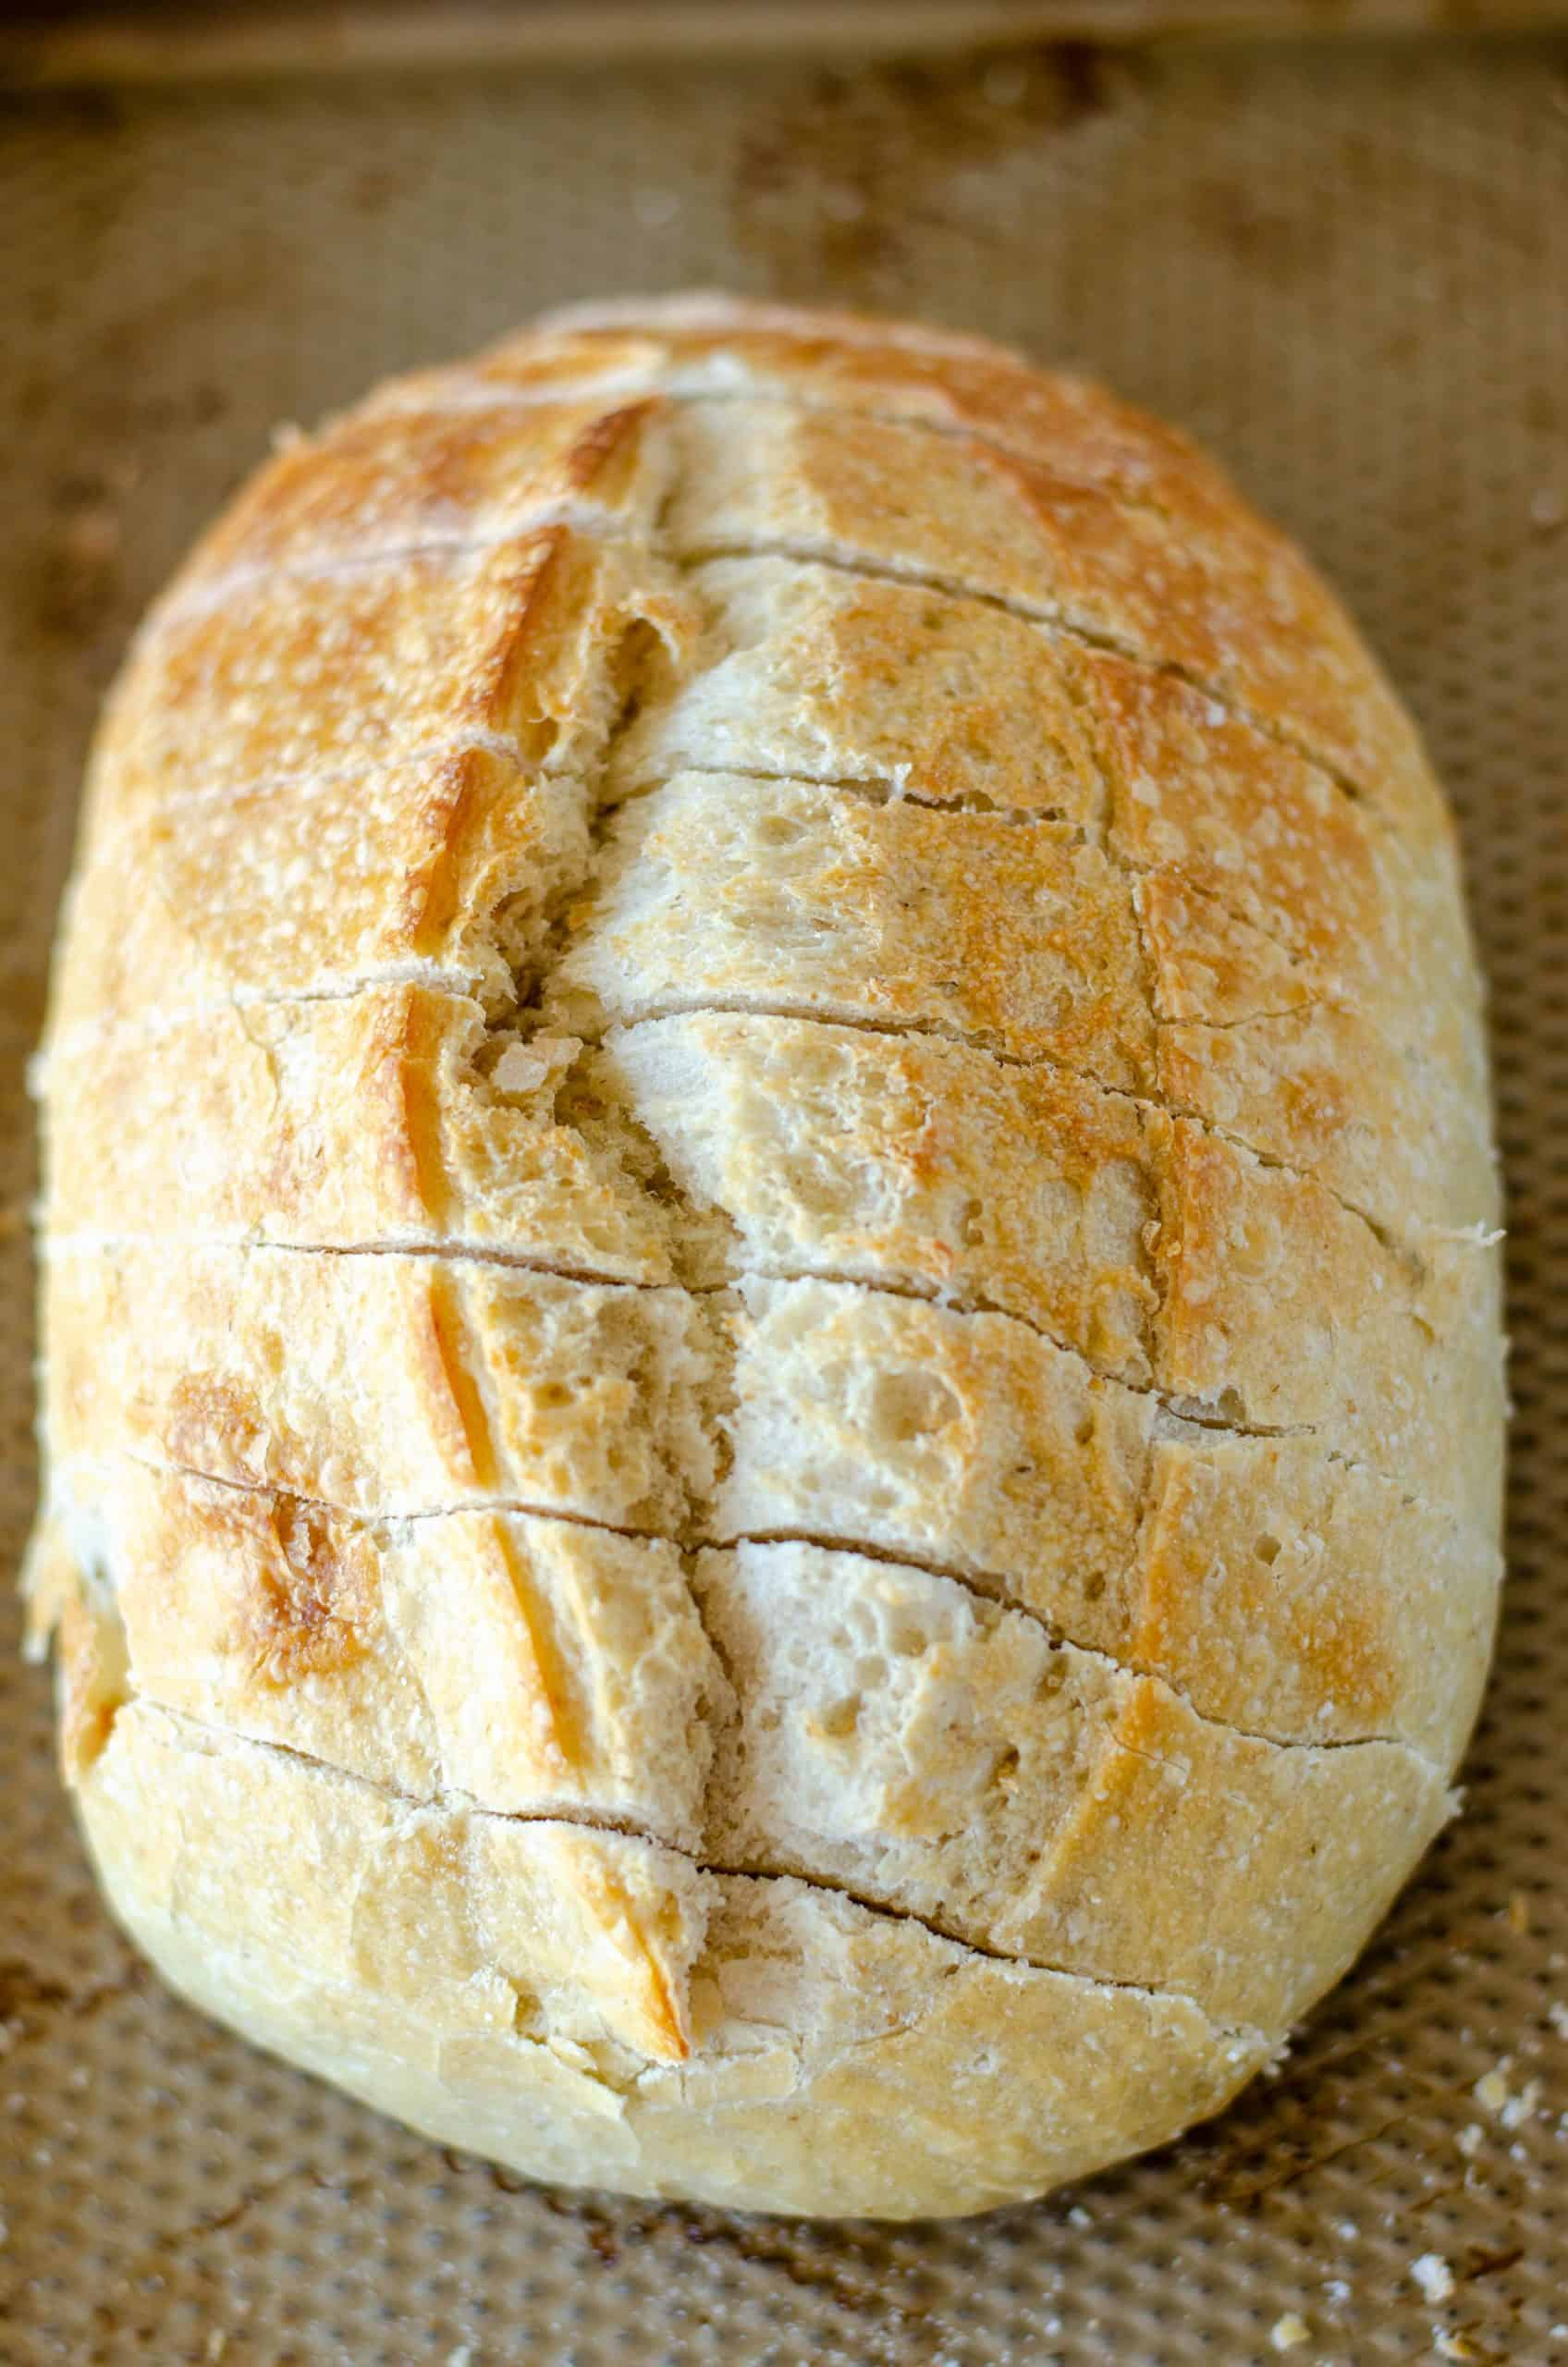 oval loaf of sourdough bread shown with diagonal cuts across it.